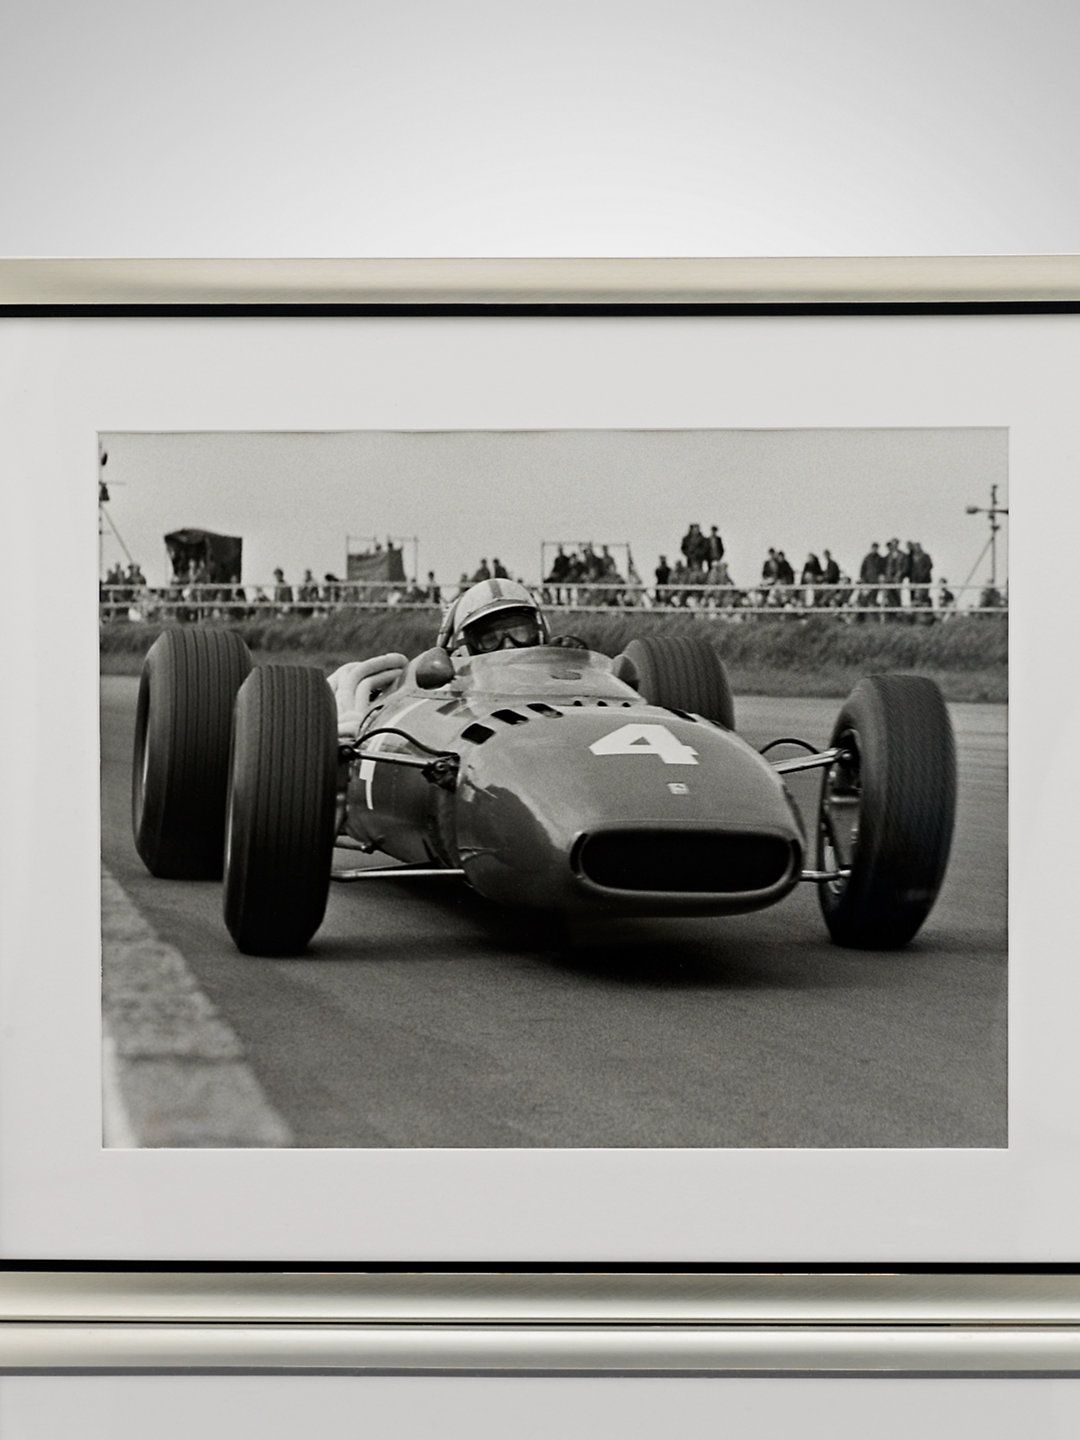 This limited-edition print supplied by Getty Images was shot in 1966 and features British race-car driver John Surtees driving a Ferrari at Silverstone Circuit, in England.